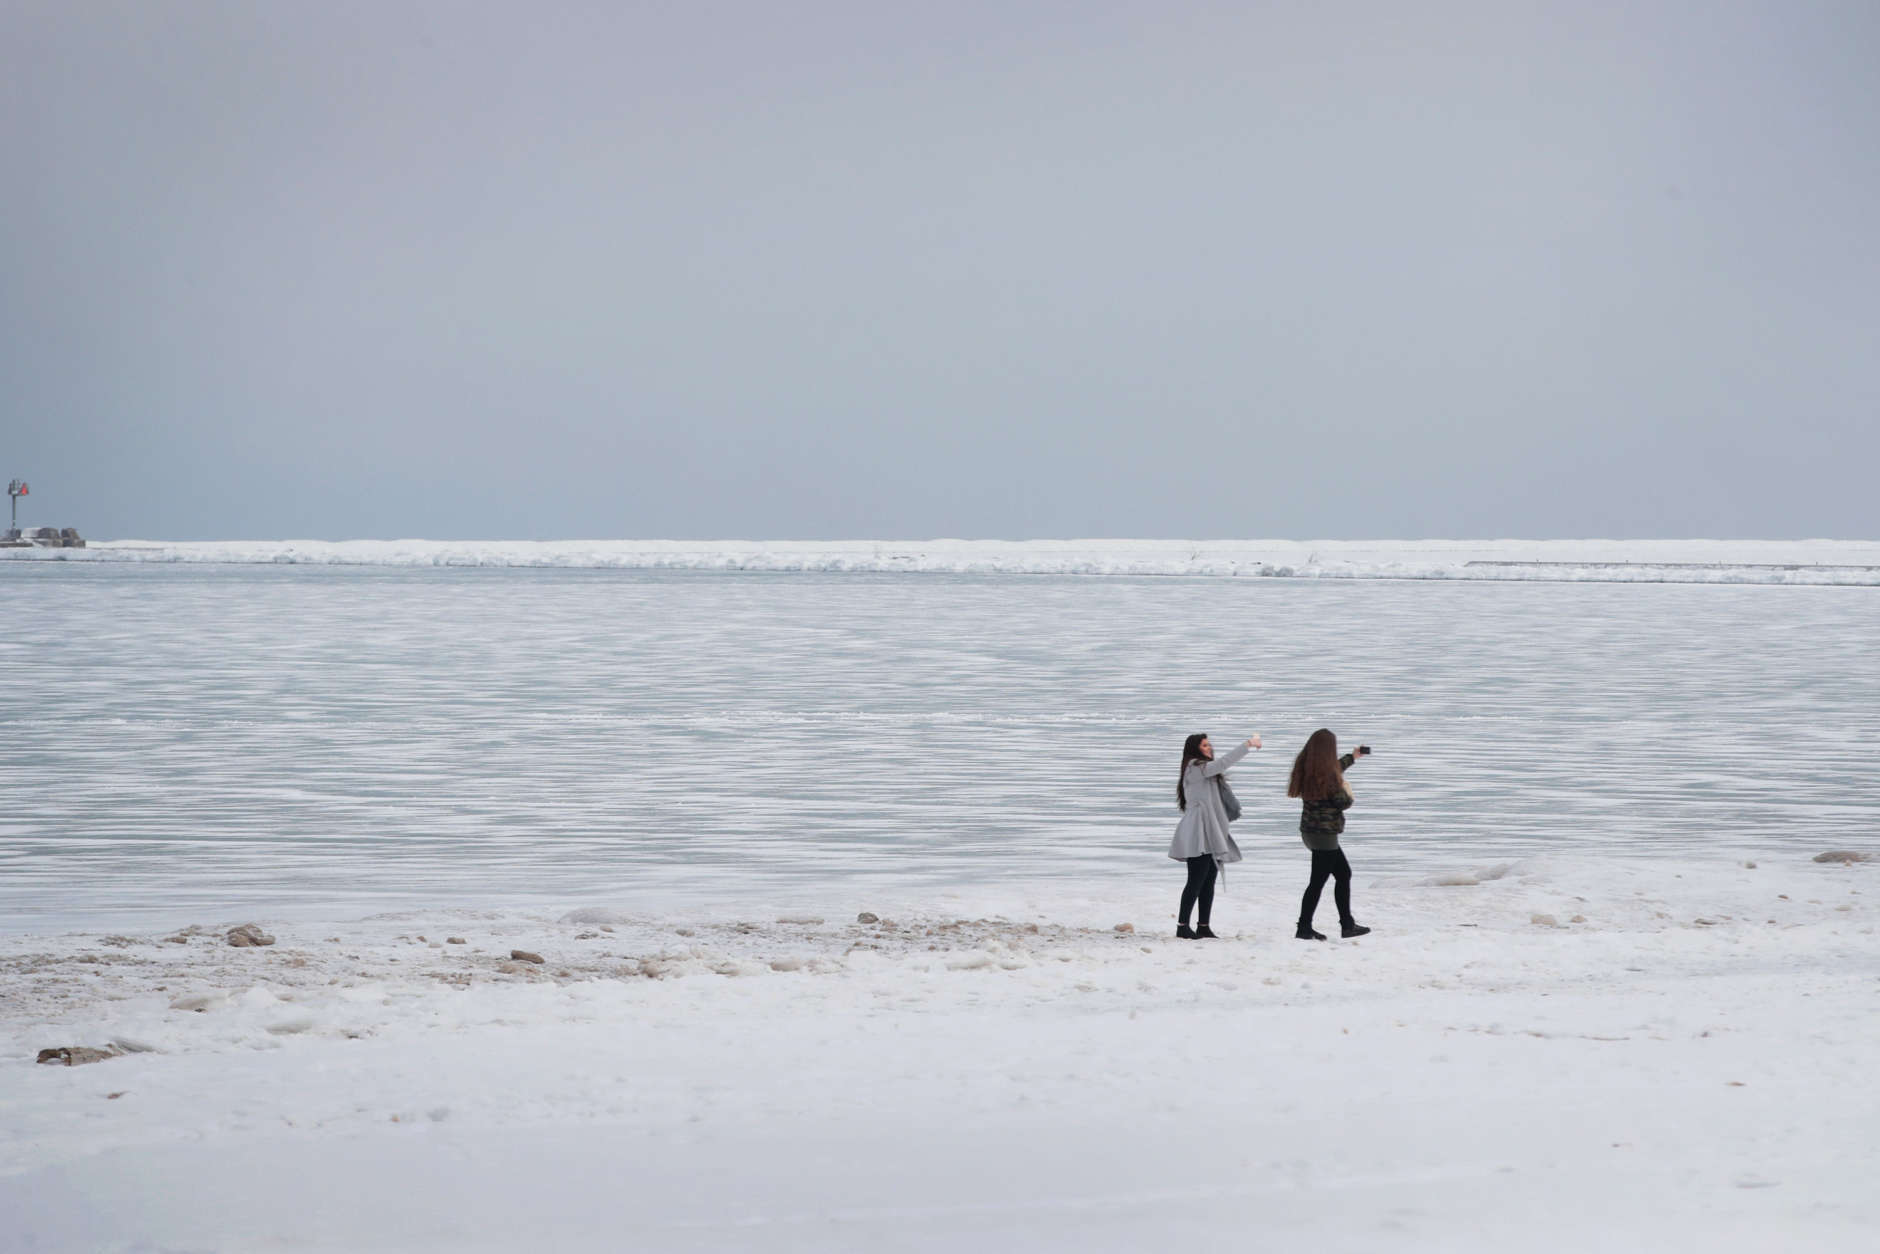 CHICAGO, IL - JANUARY 03: Visitors take selfies along the frozen shore of Lake Michigan on January 3, 2018 in Chicago, Illinois. Record cold temperatures are gripping much of the U.S. and are being blamed on several deaths over the past week.  (Photo by Scott Olson/Getty Images)